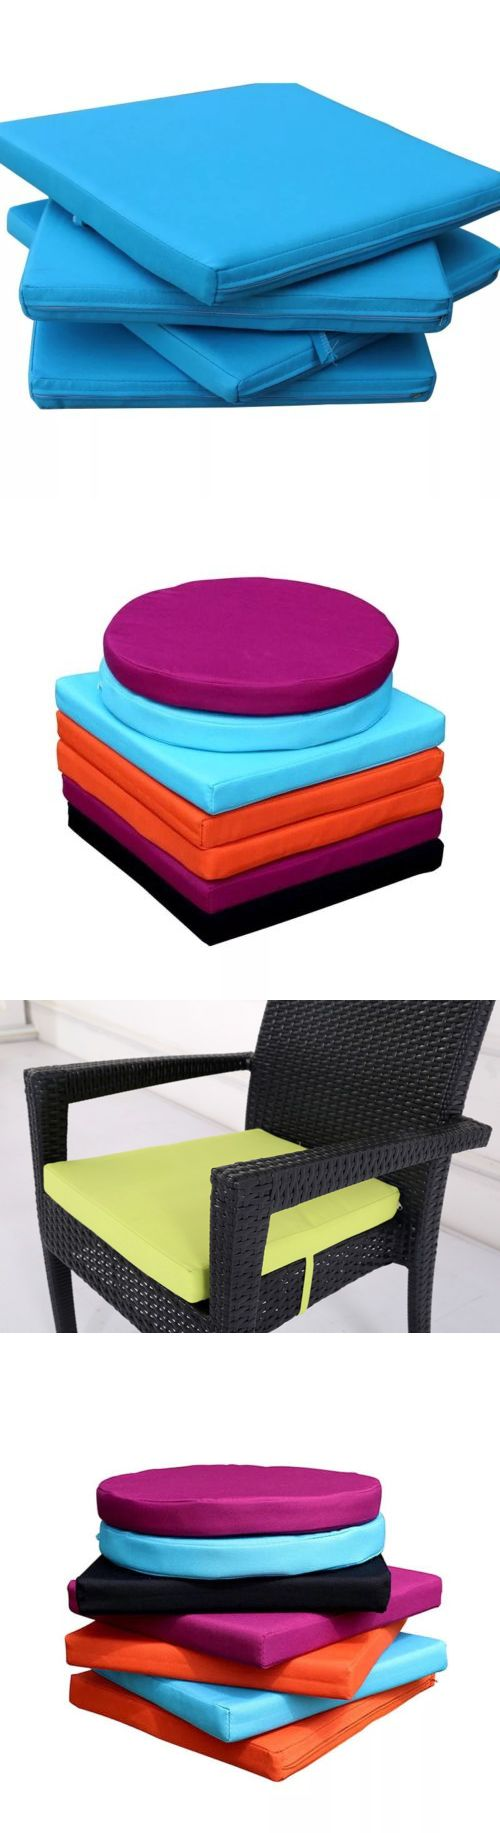 Excellent Patio Furniture Cushions And Pads 79683 Waterproof Chair Cjindustries Chair Design For Home Cjindustriesco